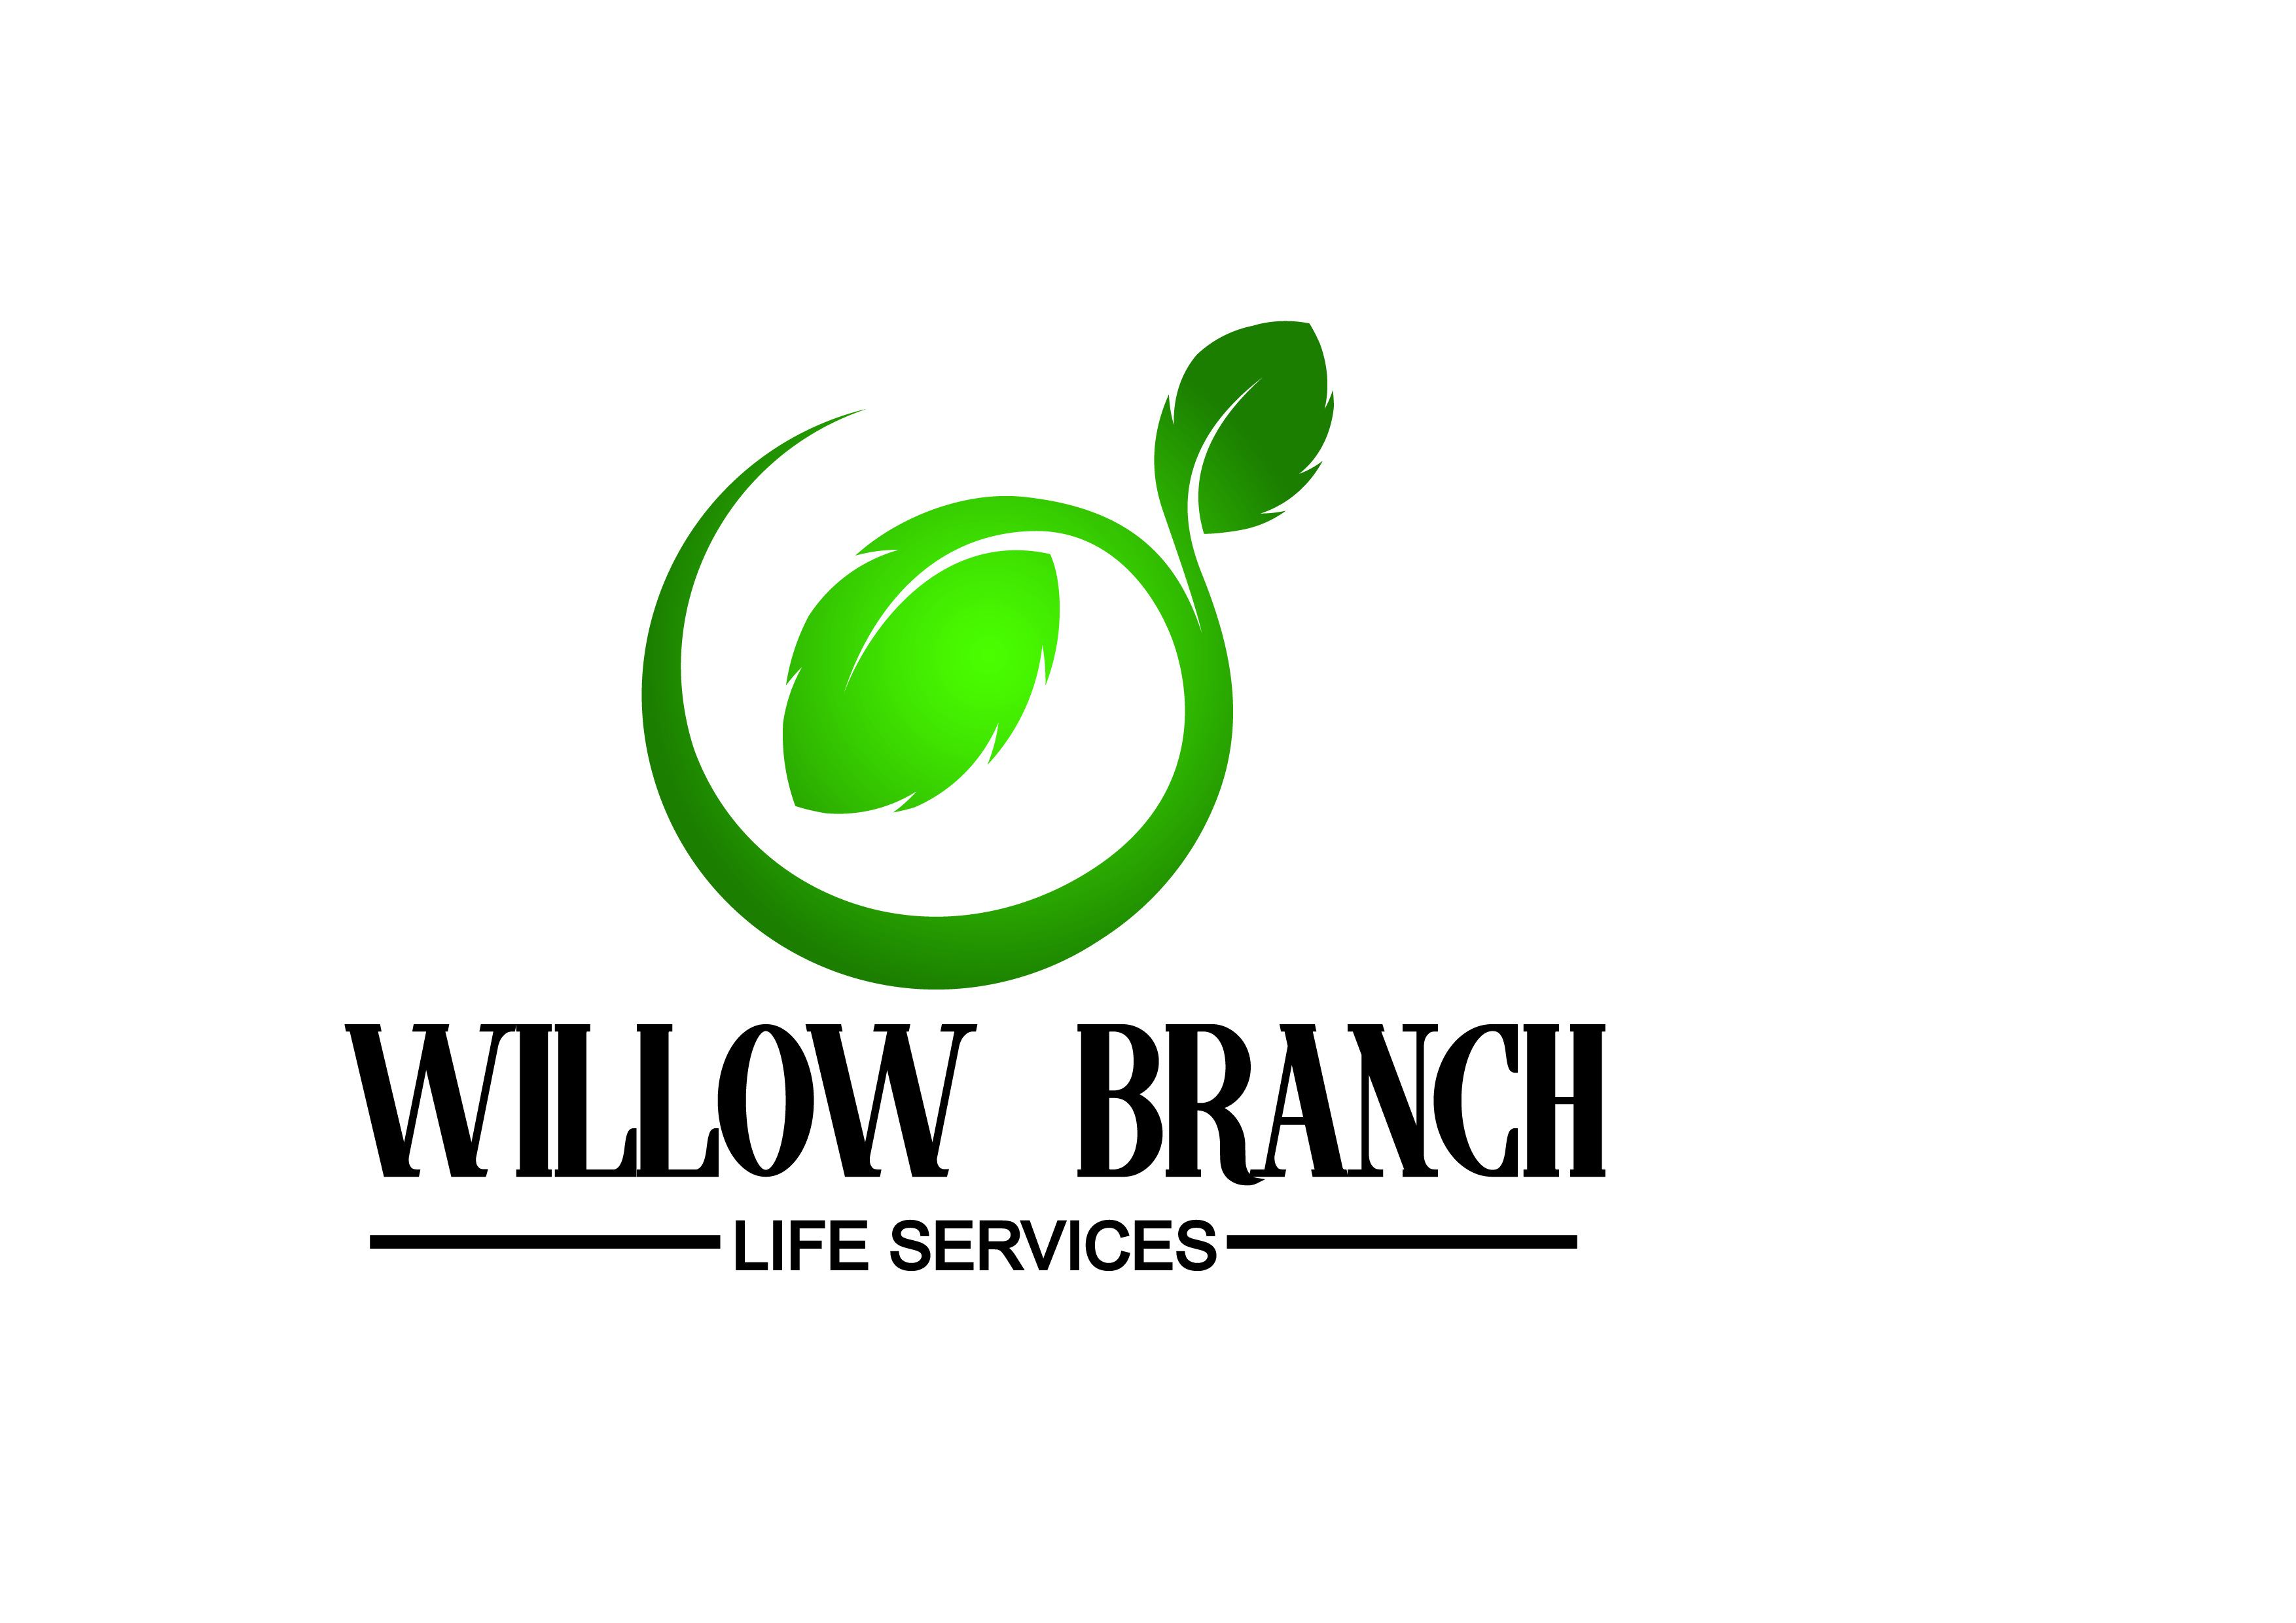 Logo Design by Anum Aamir - Entry No. 193 in the Logo Design Contest Artistic Logo Design for Willow Branch Life Service.